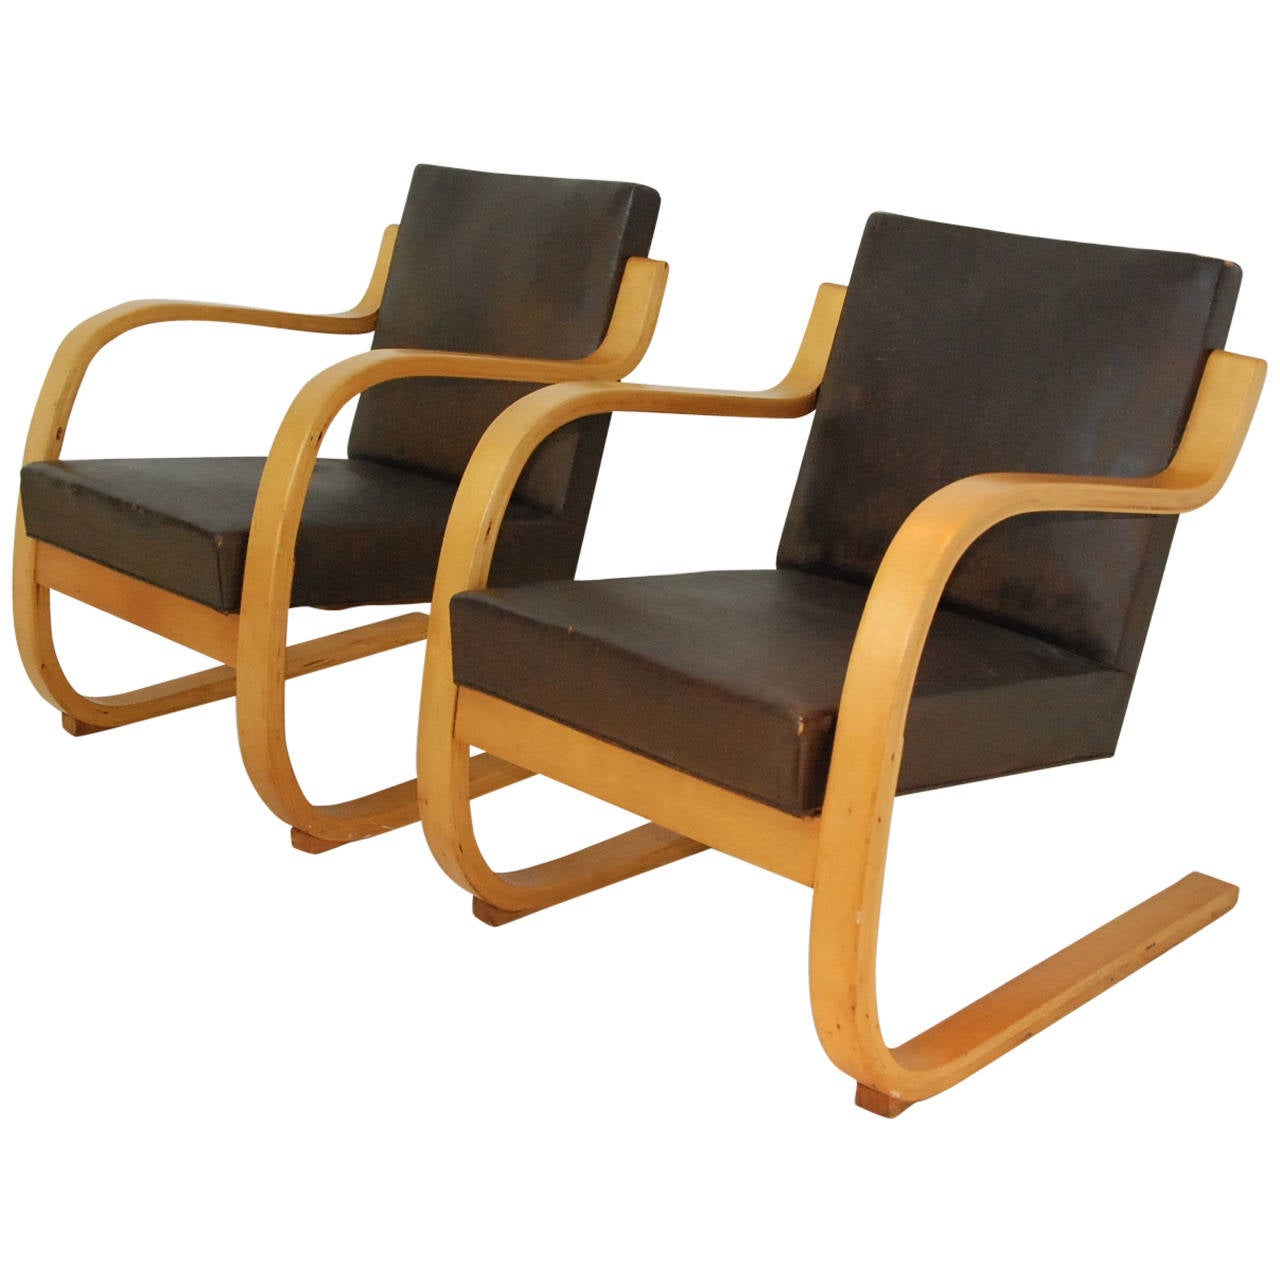 Pair of lounge chairs 34 402 by alvar aalto for sale at for Alvar aalto chaise